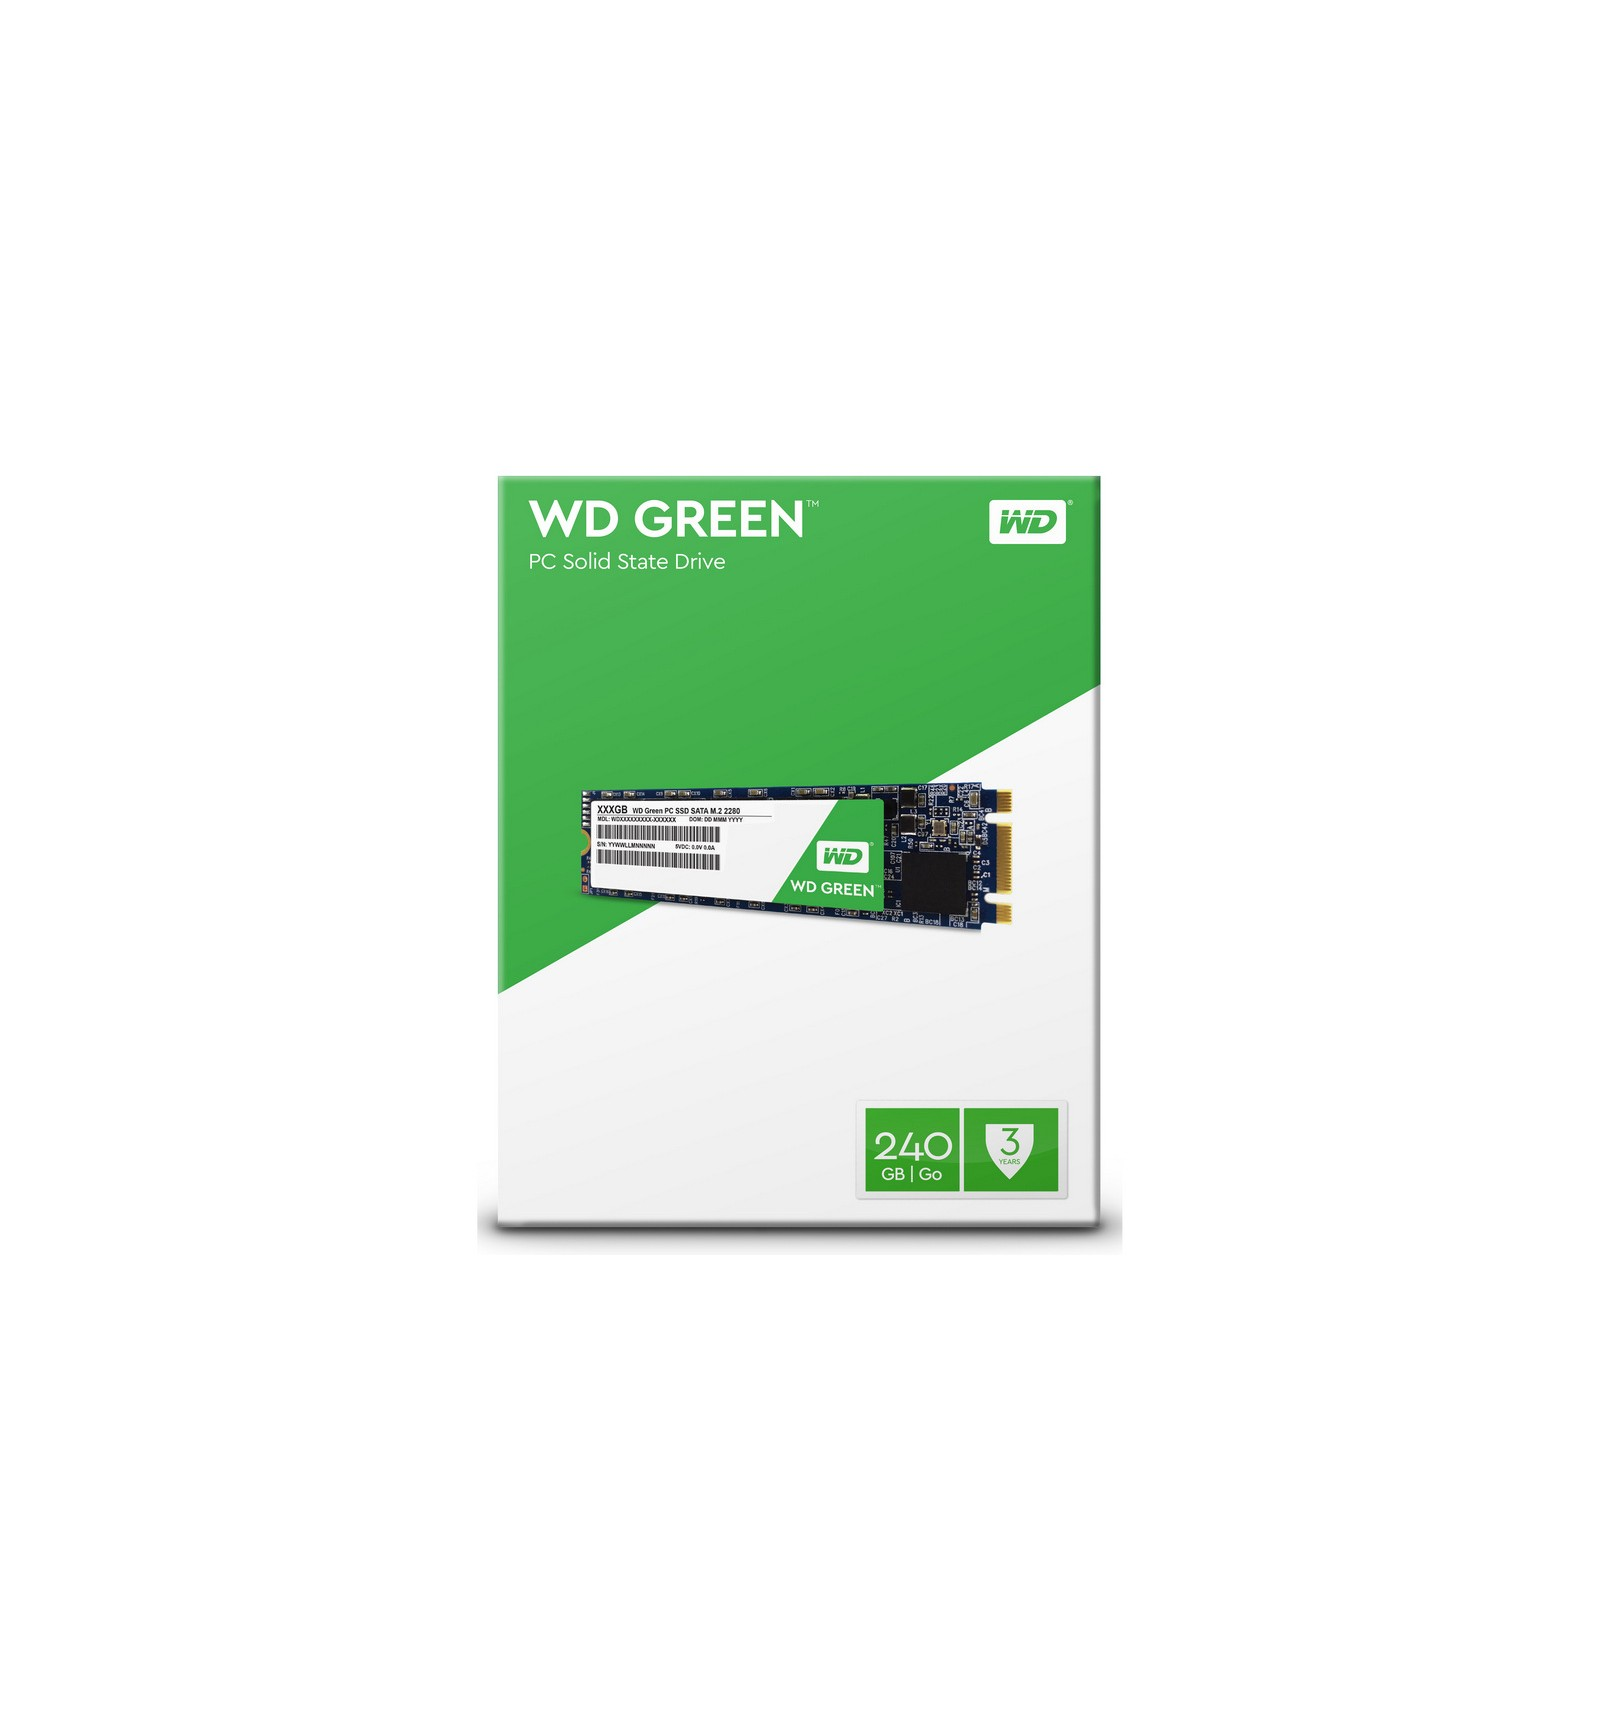 Comprar Disco Duro Interno Ssd Wd Green 240gb M2 Sata Red Computer Sata3